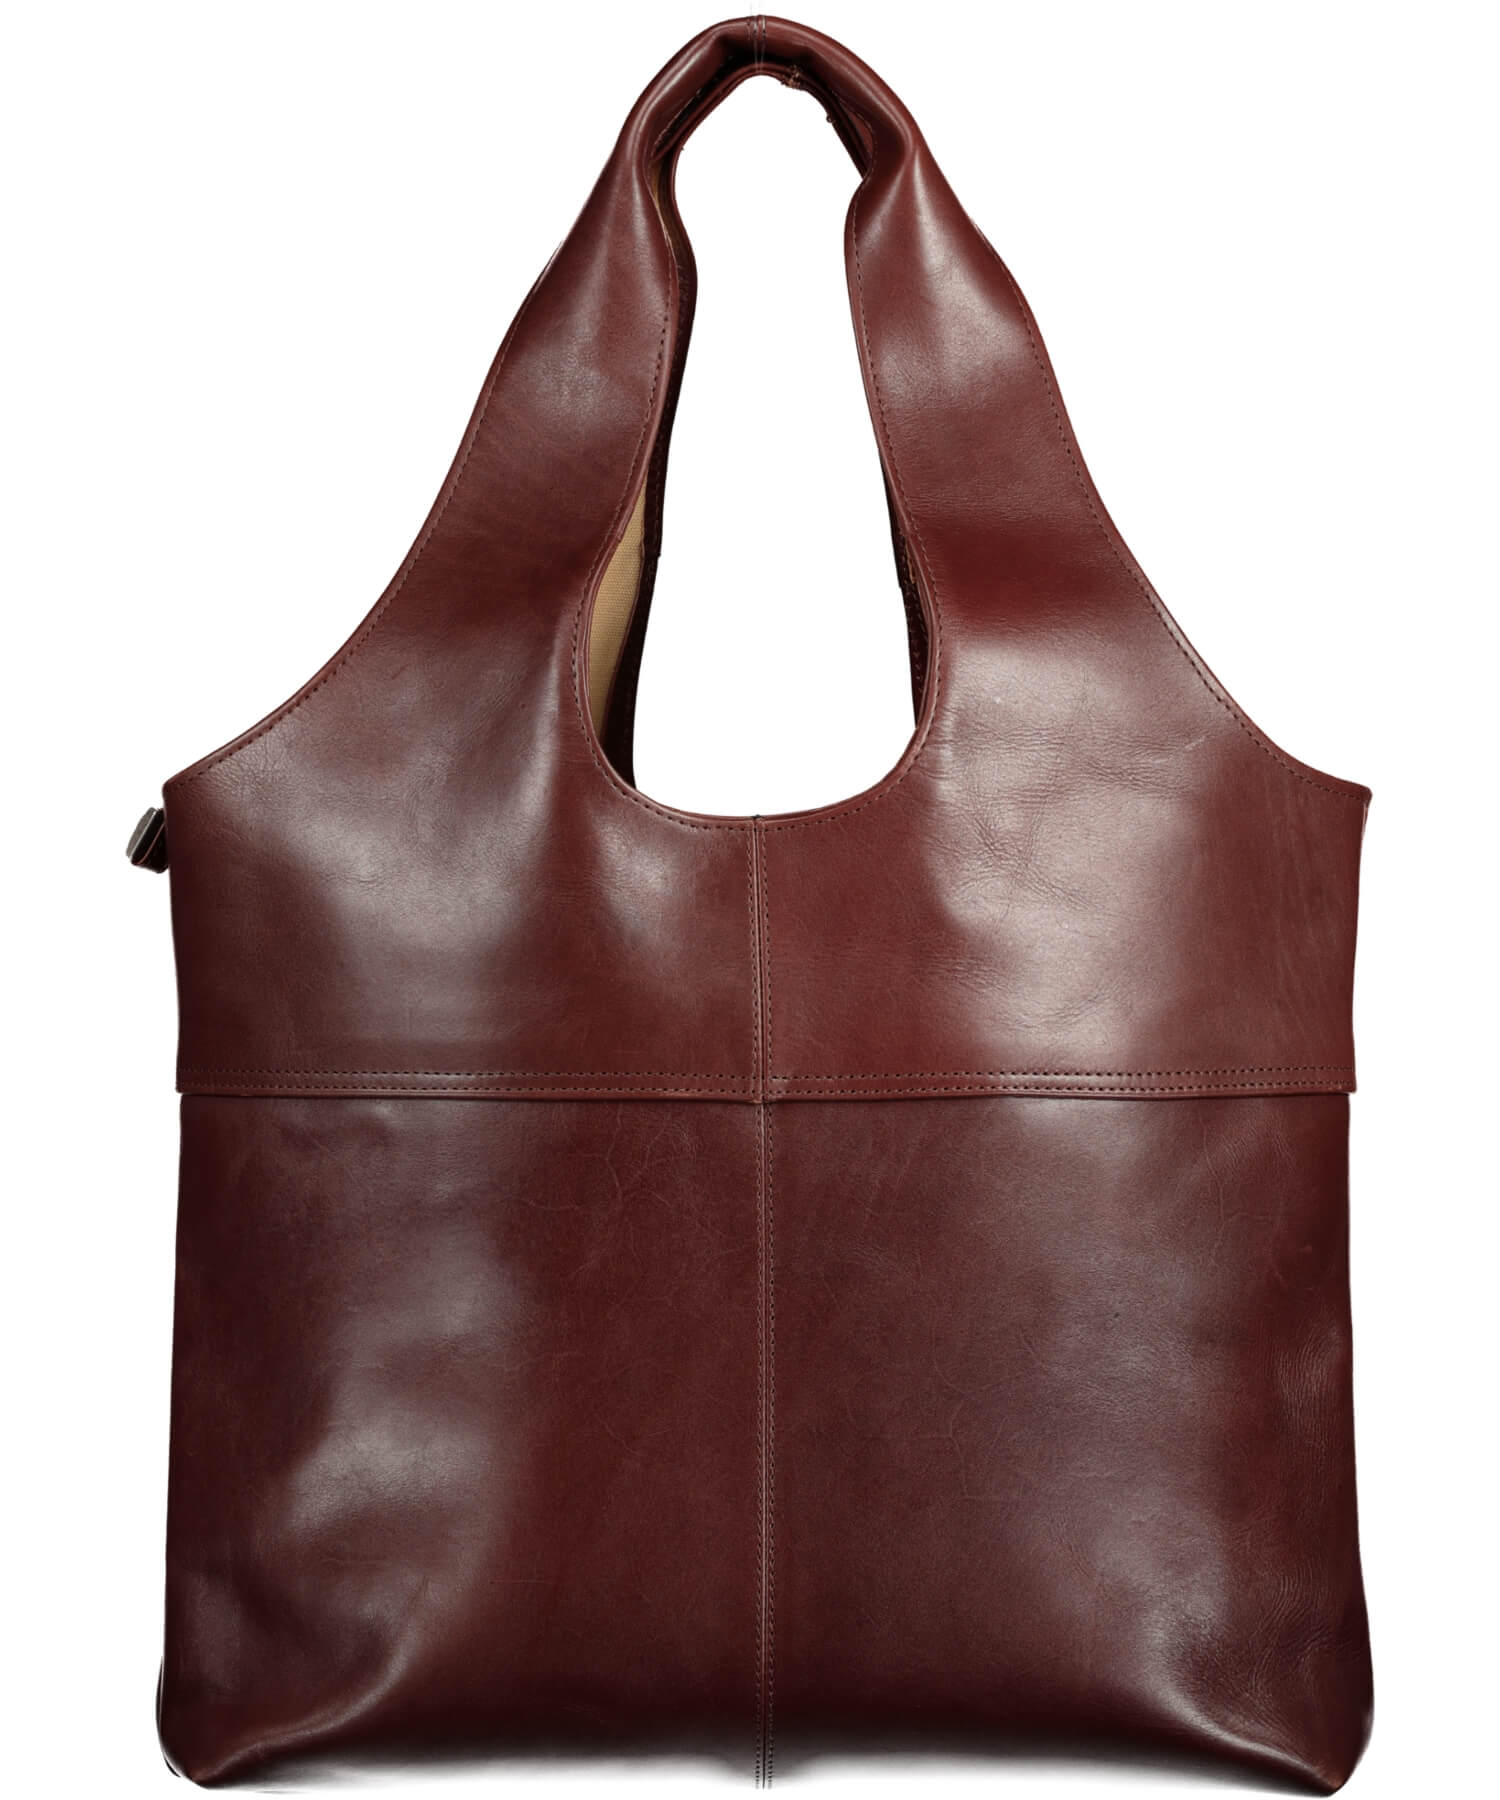 Braden Leather Shopper - Brown - [Lee River] - Bags, Purses & Wallets - Irish Gifts